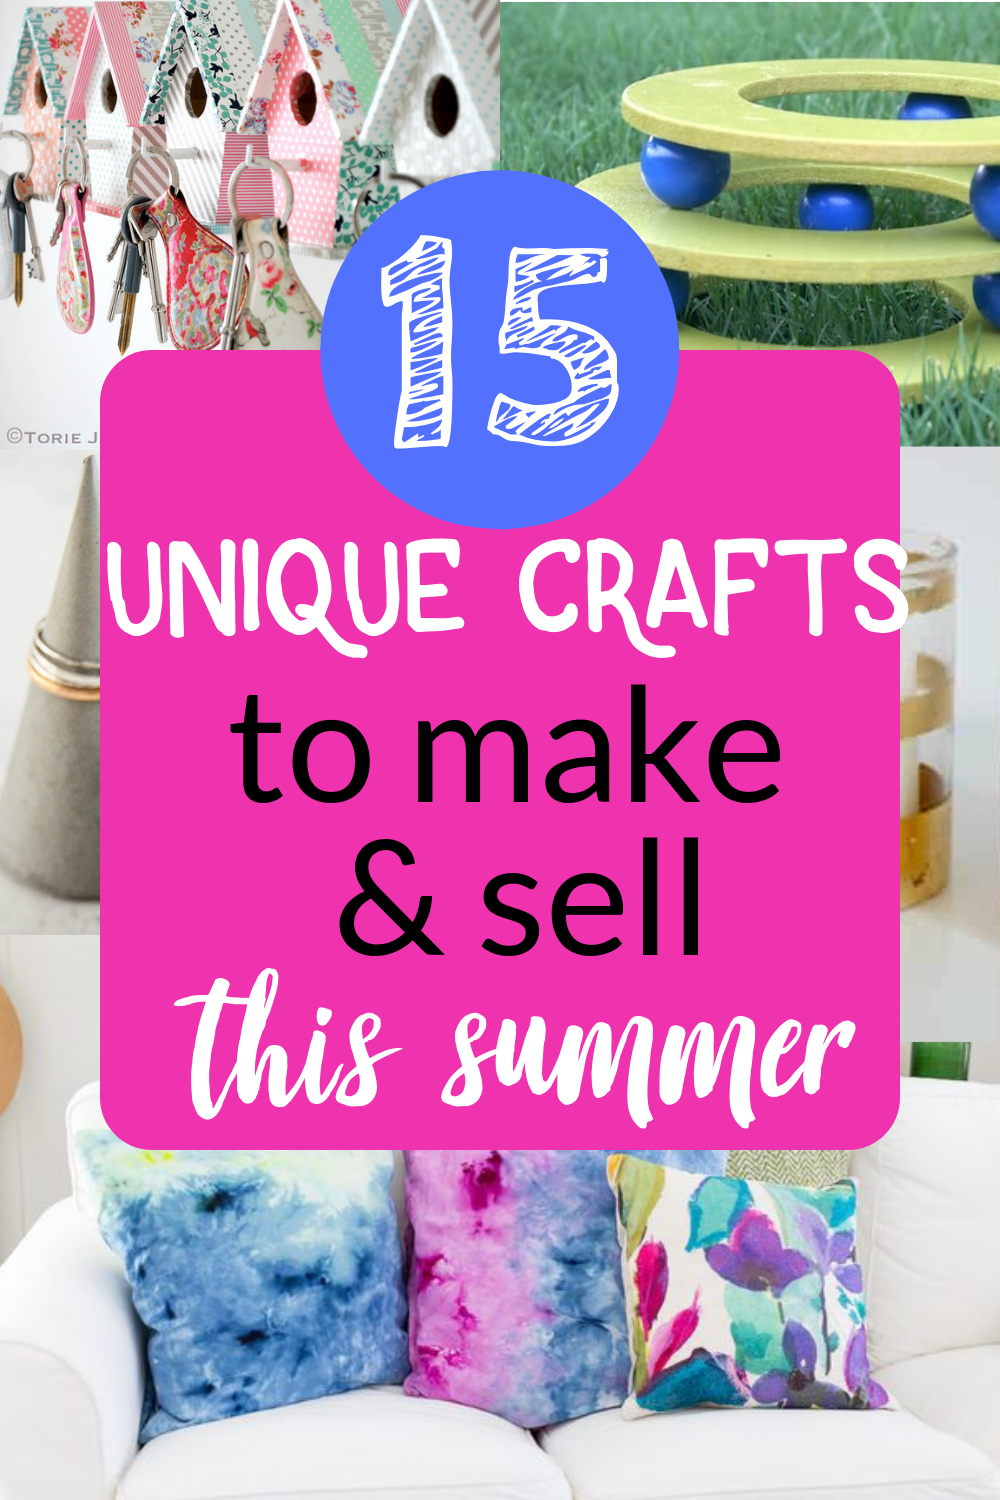 15 Unique Crafts to Make and Sell This Summer #uniquecrafts